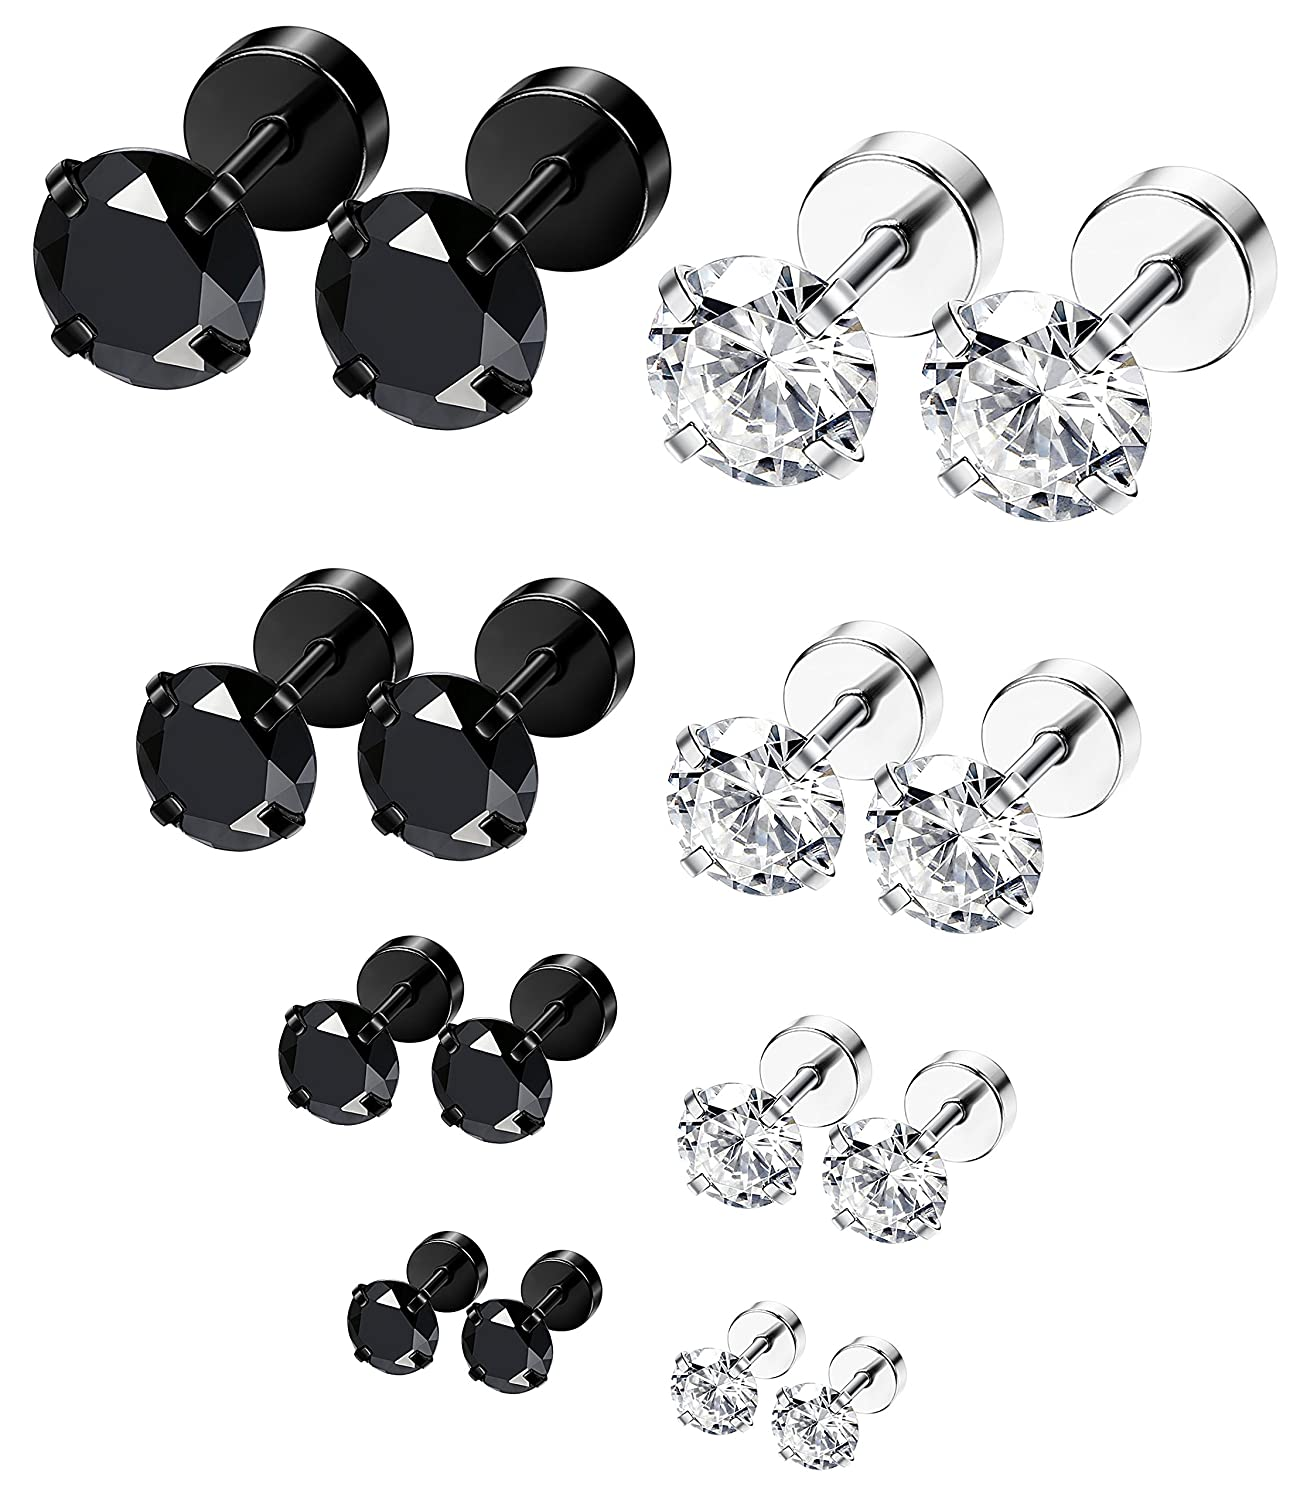 ORAZIO 8 Pairs 18G Stainless Steel Ear Stud Piercing Barbell Studs Earrings Round Cubic Zirconia Inlaid EH13-8F